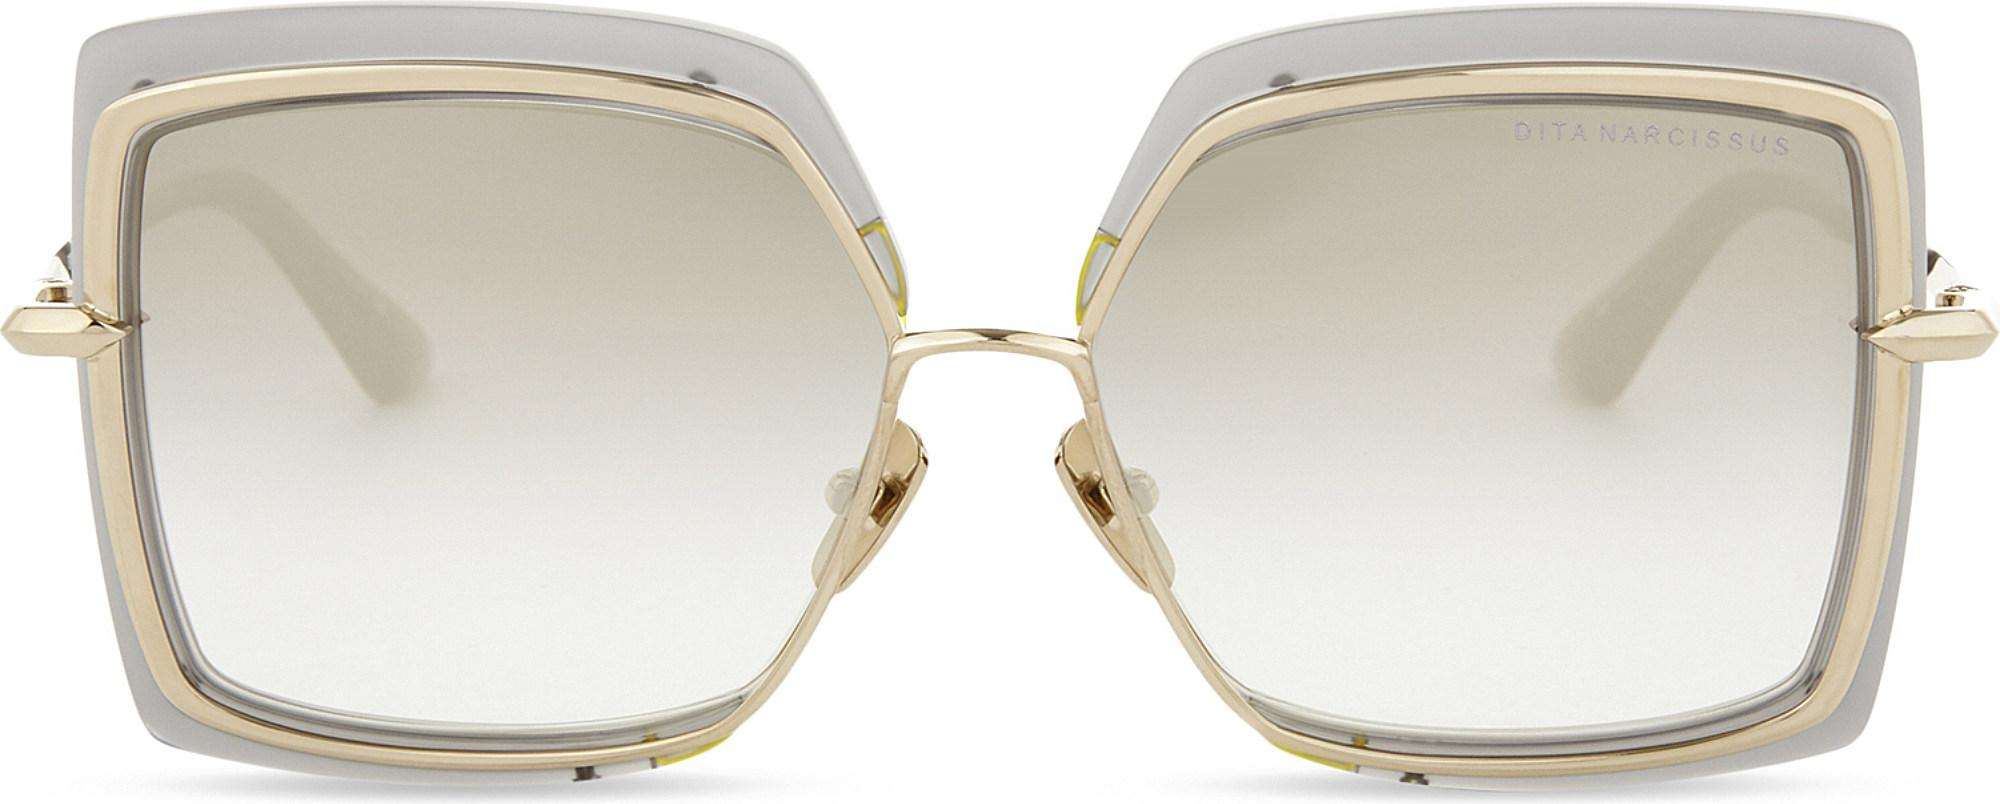 26a83e2056f DITA Narcissus Square-frame Sunglasses in Metallic - Lyst